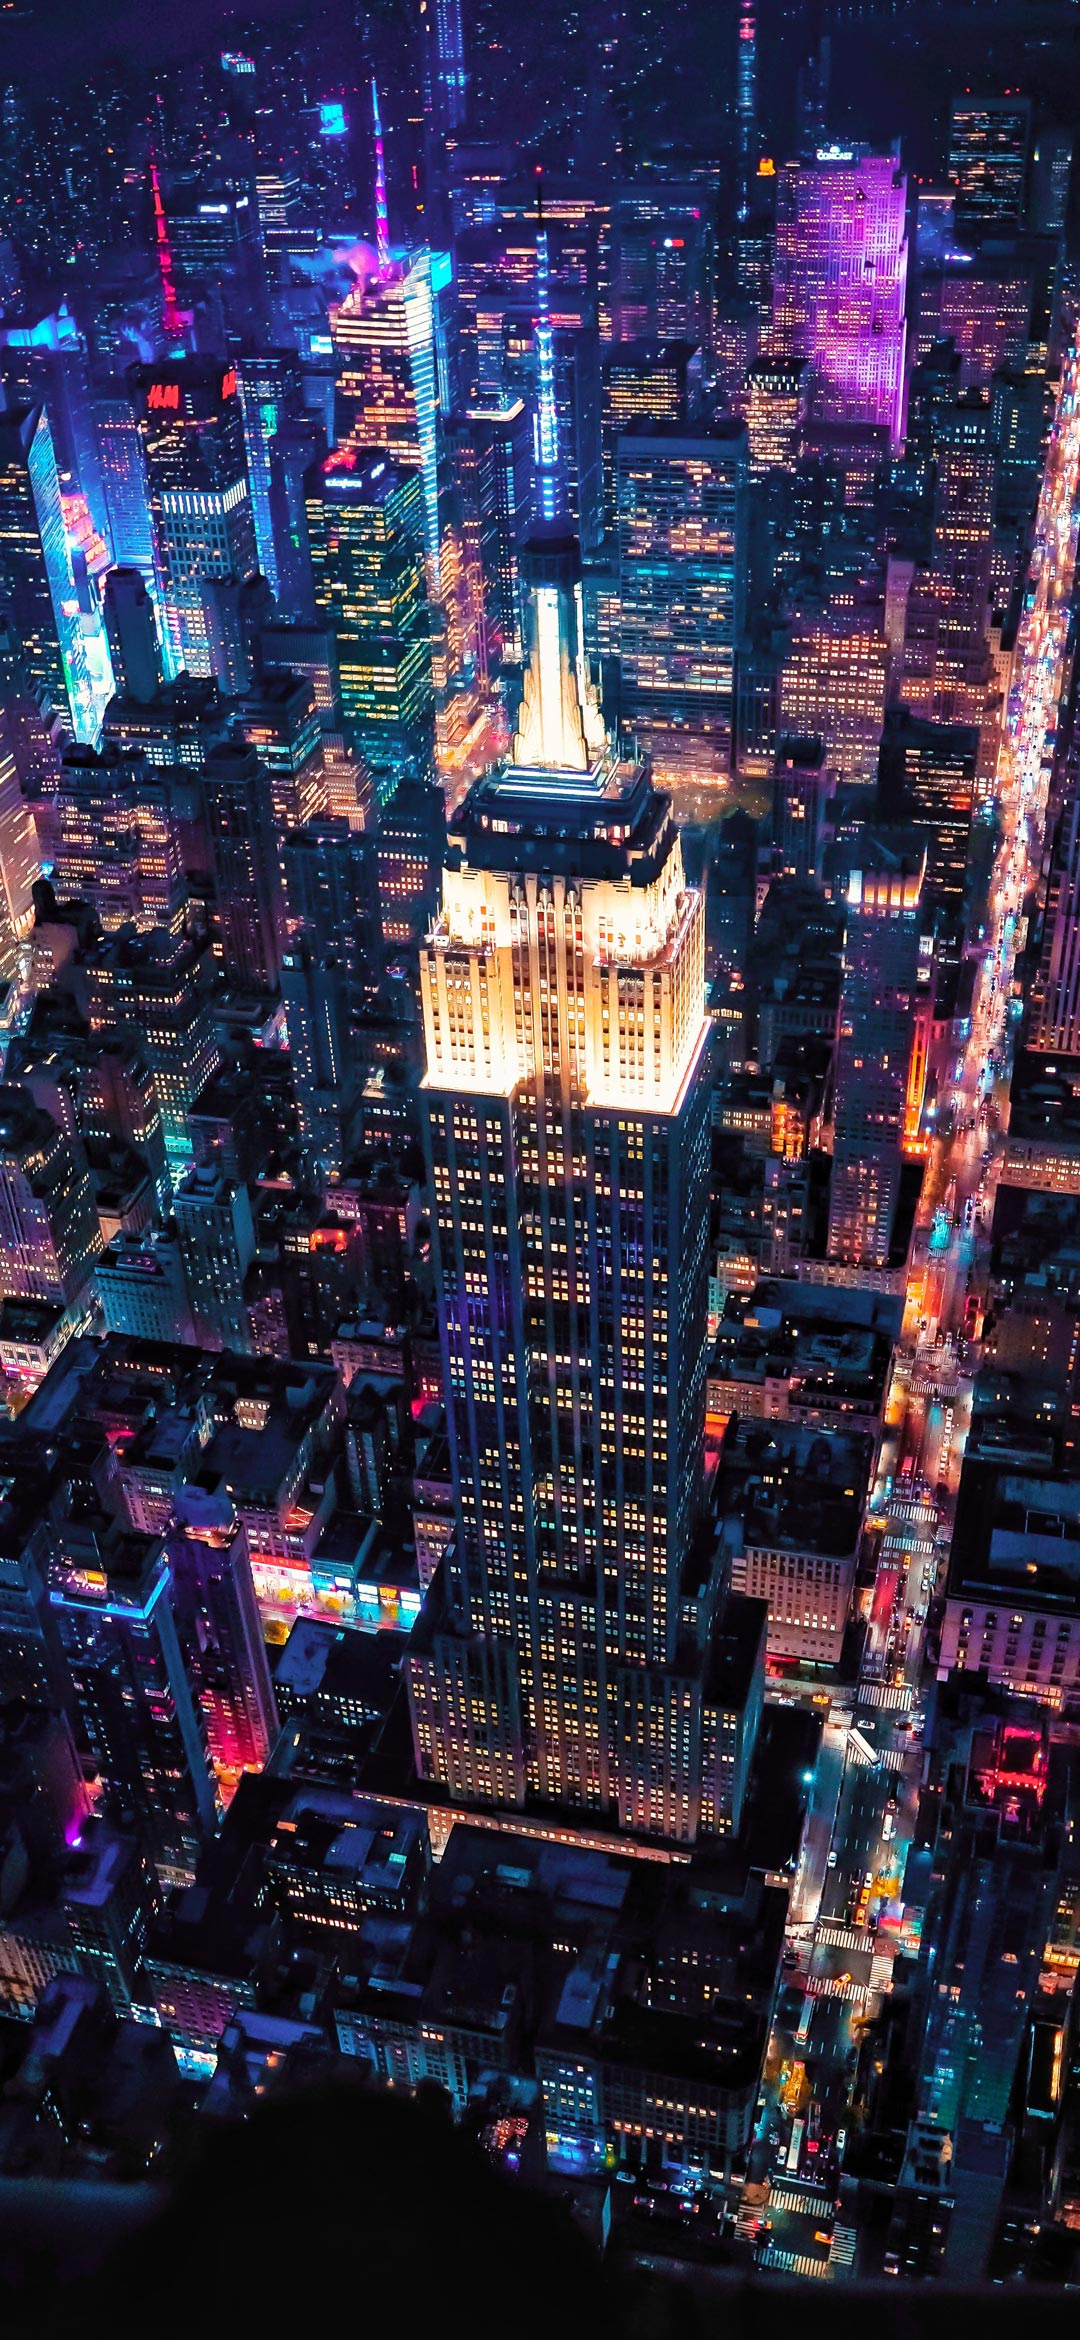 aerial view of city buildings during night wallpaper